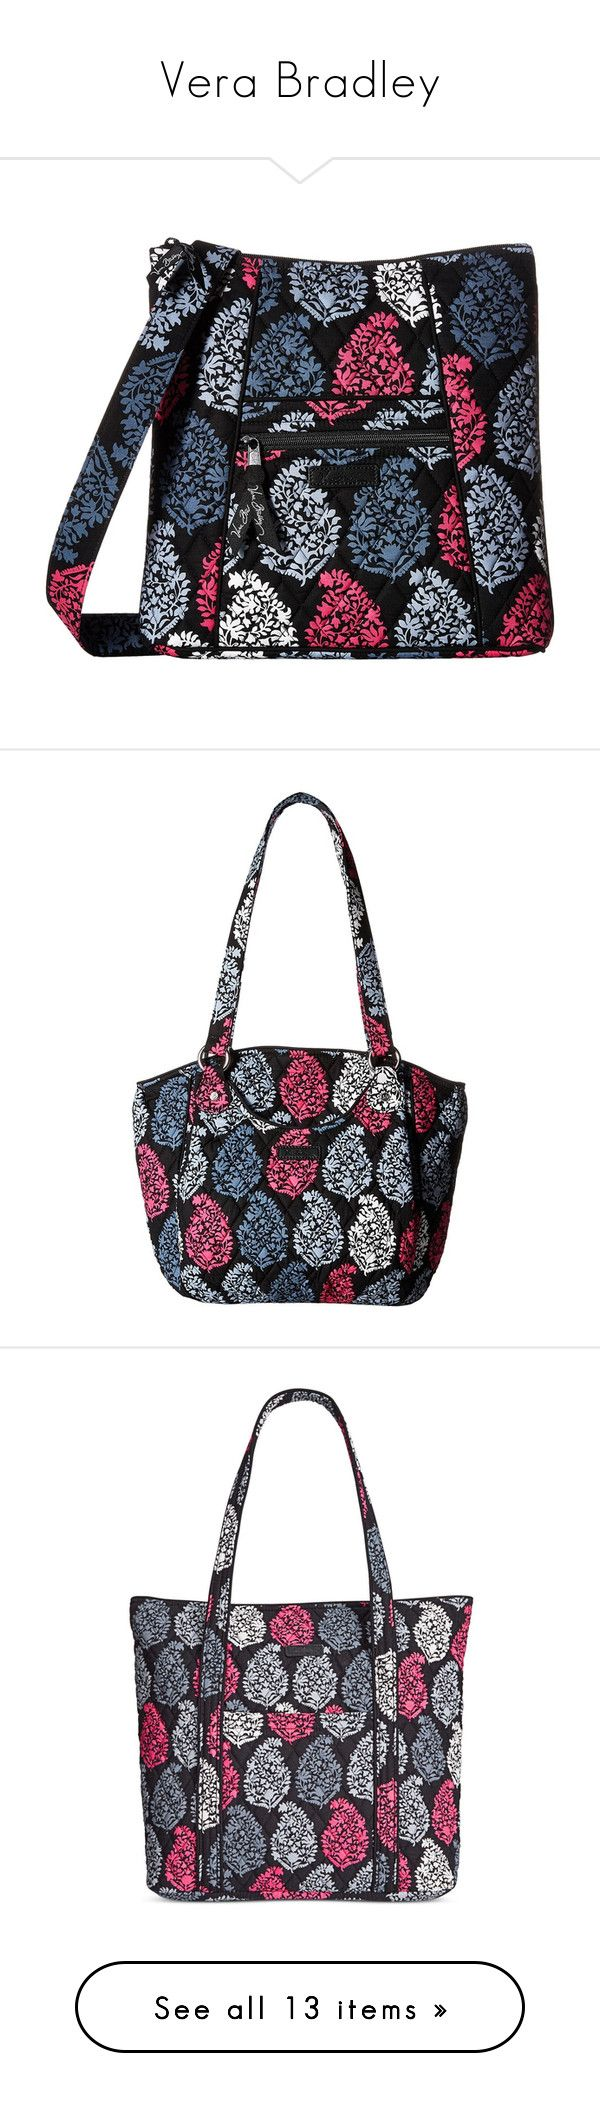 """Vera Bradley"" by ariellejsmith ❤ liked on Polyvore featuring northern lights, bags, handbags, shoulder bags, vera bradley handbags, hand bags, shoulder strap bags, purses crossbody, shoulder strap handbags and tote bags"